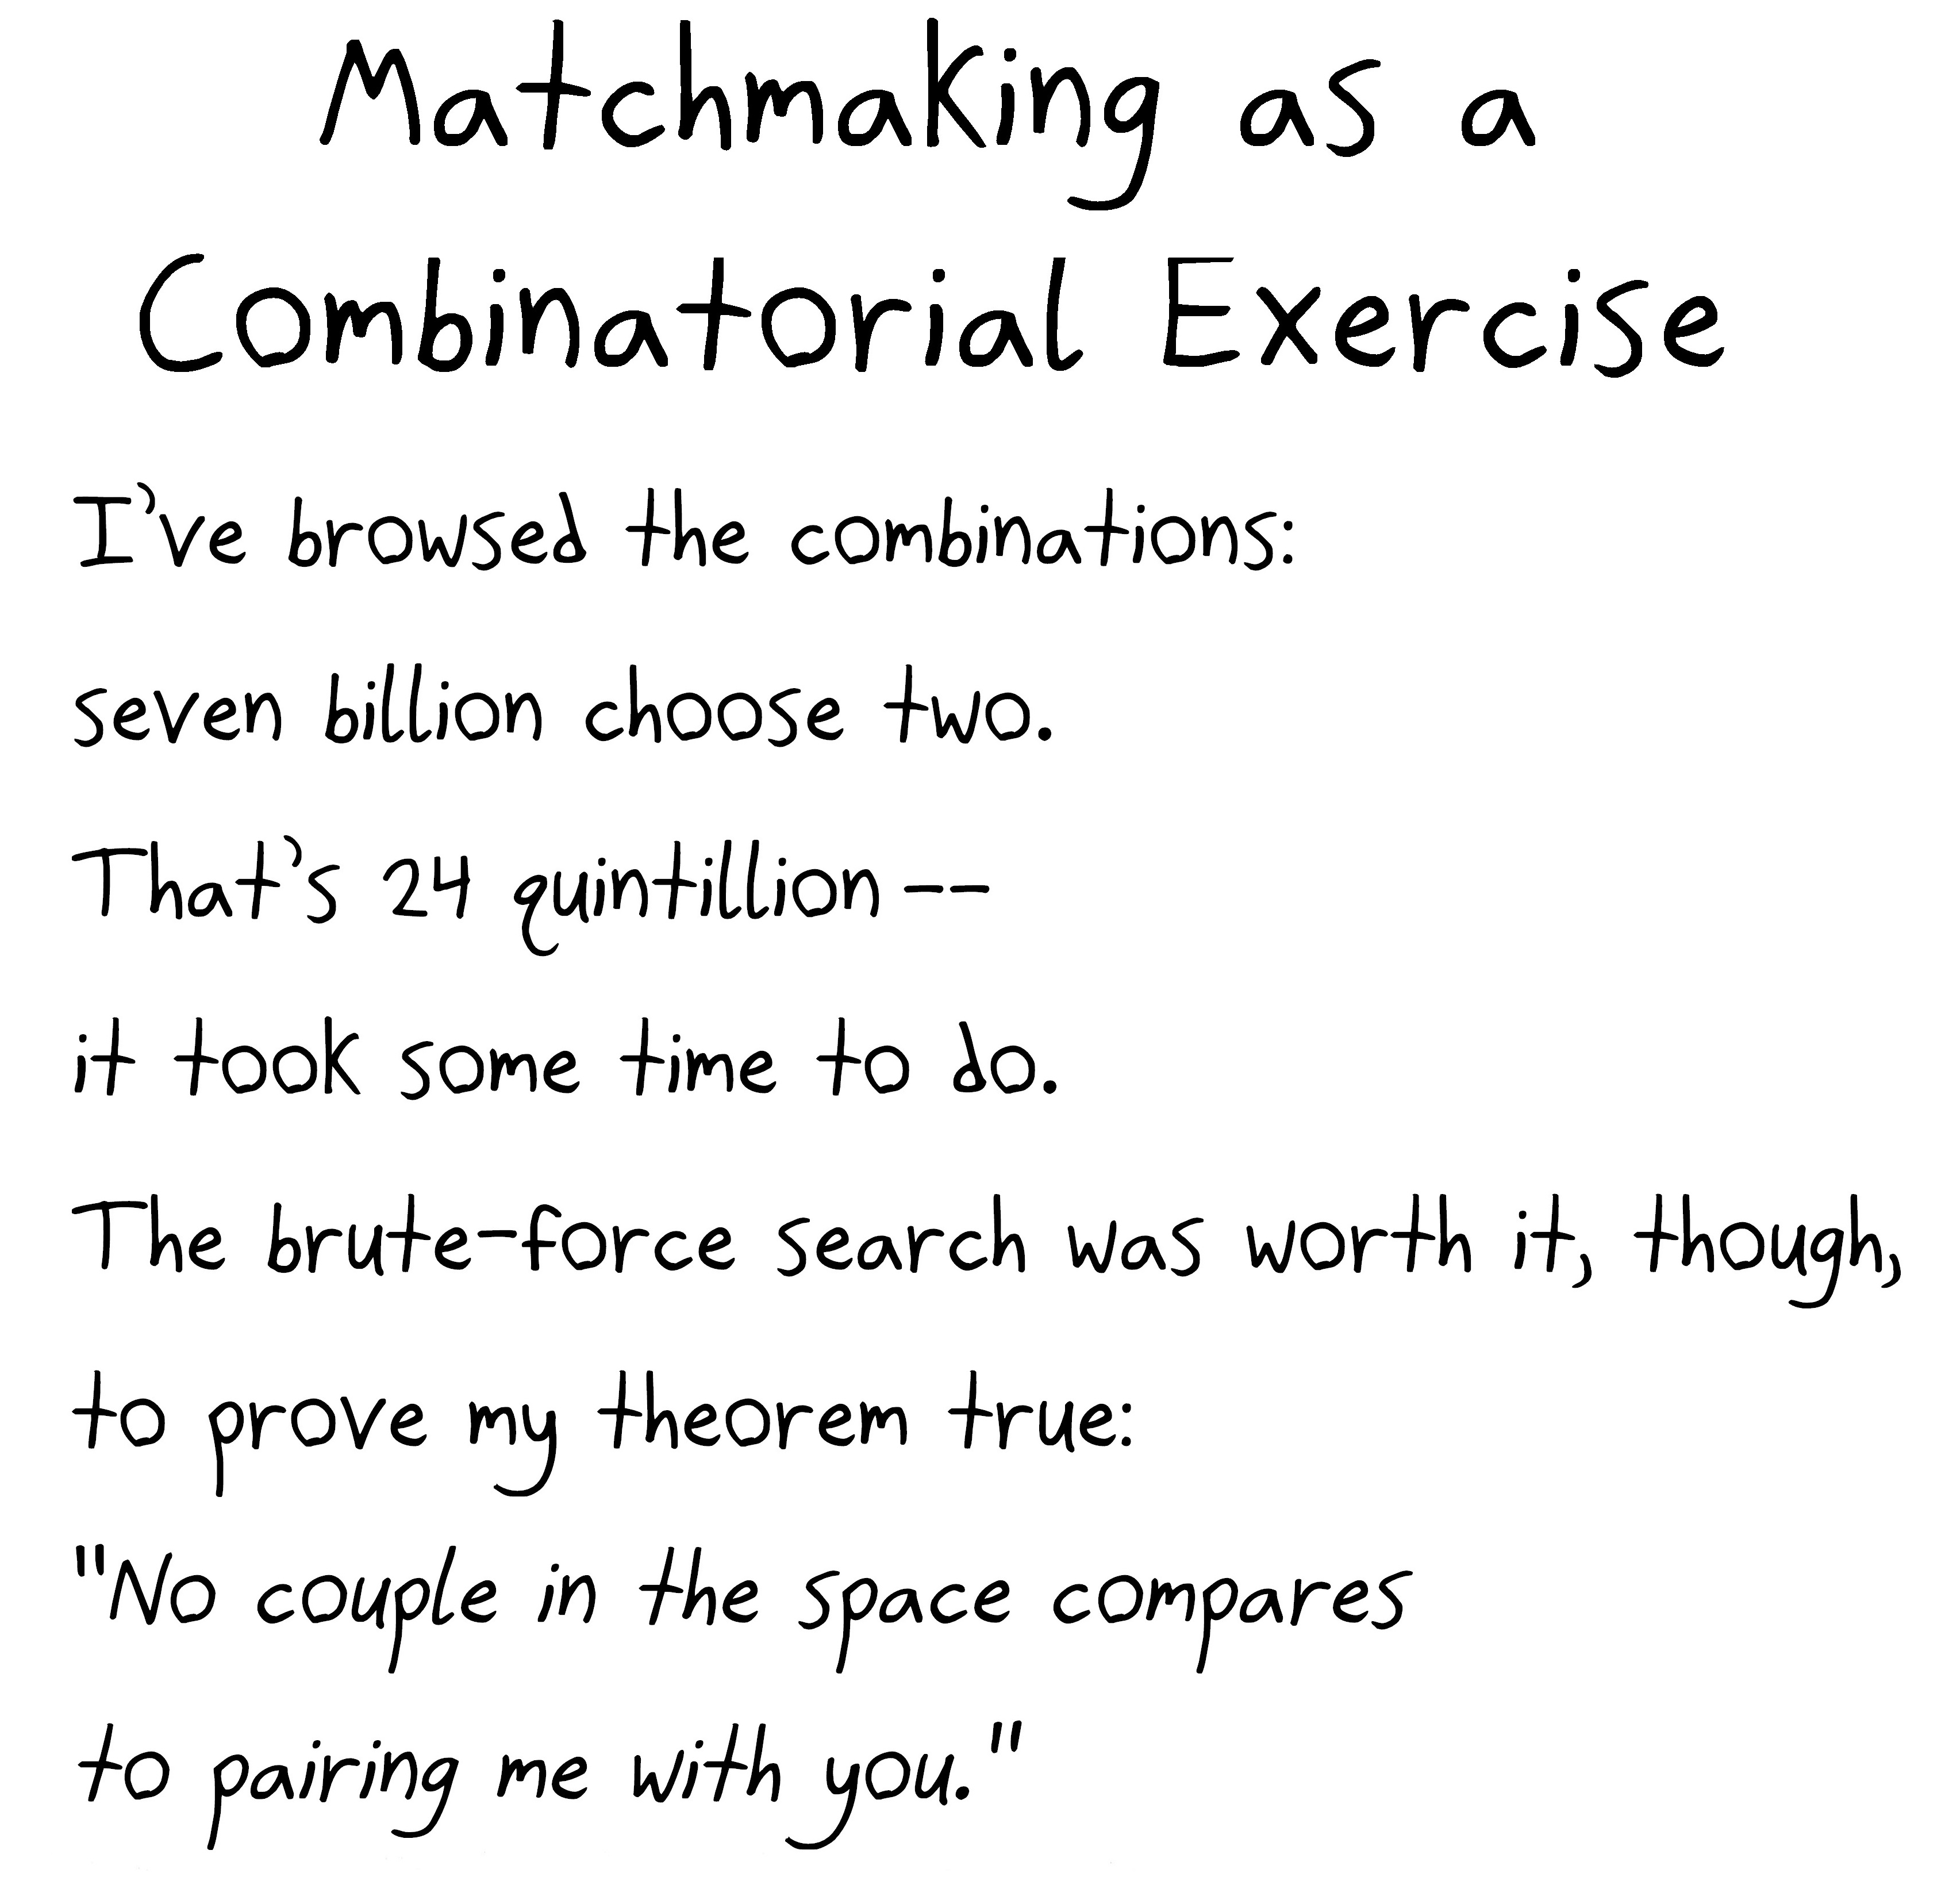 Matchmaking poems